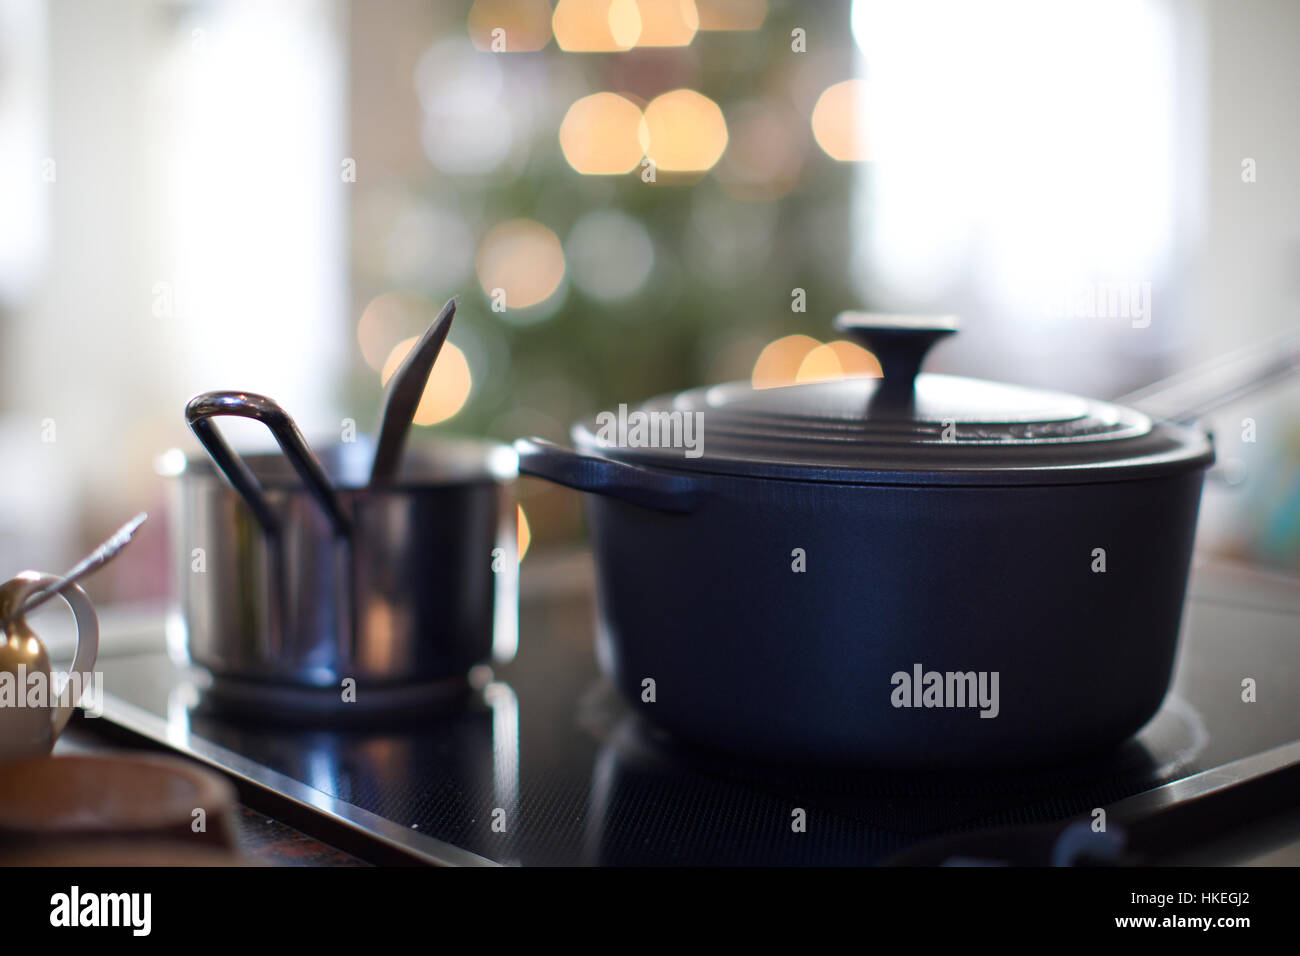 pots and pans on electric induction stove. kitchen, induction cooking, saucepan, lid. - Stock Image